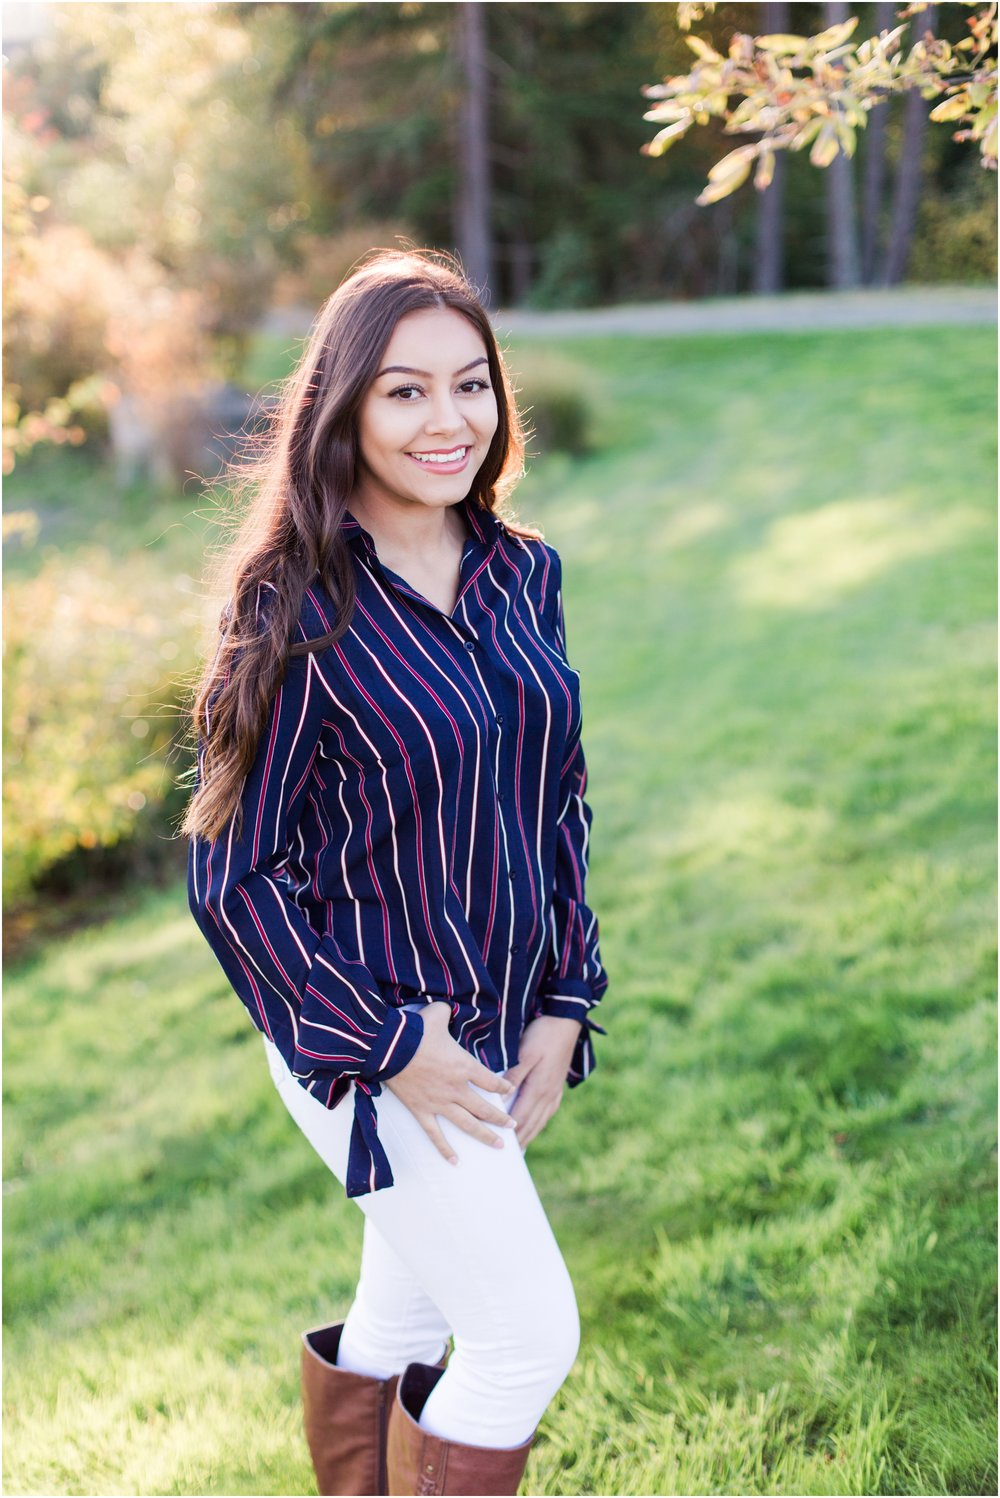 High School Senior portriats by Briana Calderon Photography based in the Greater Seattle & Tacoma, WA_0940.jpg